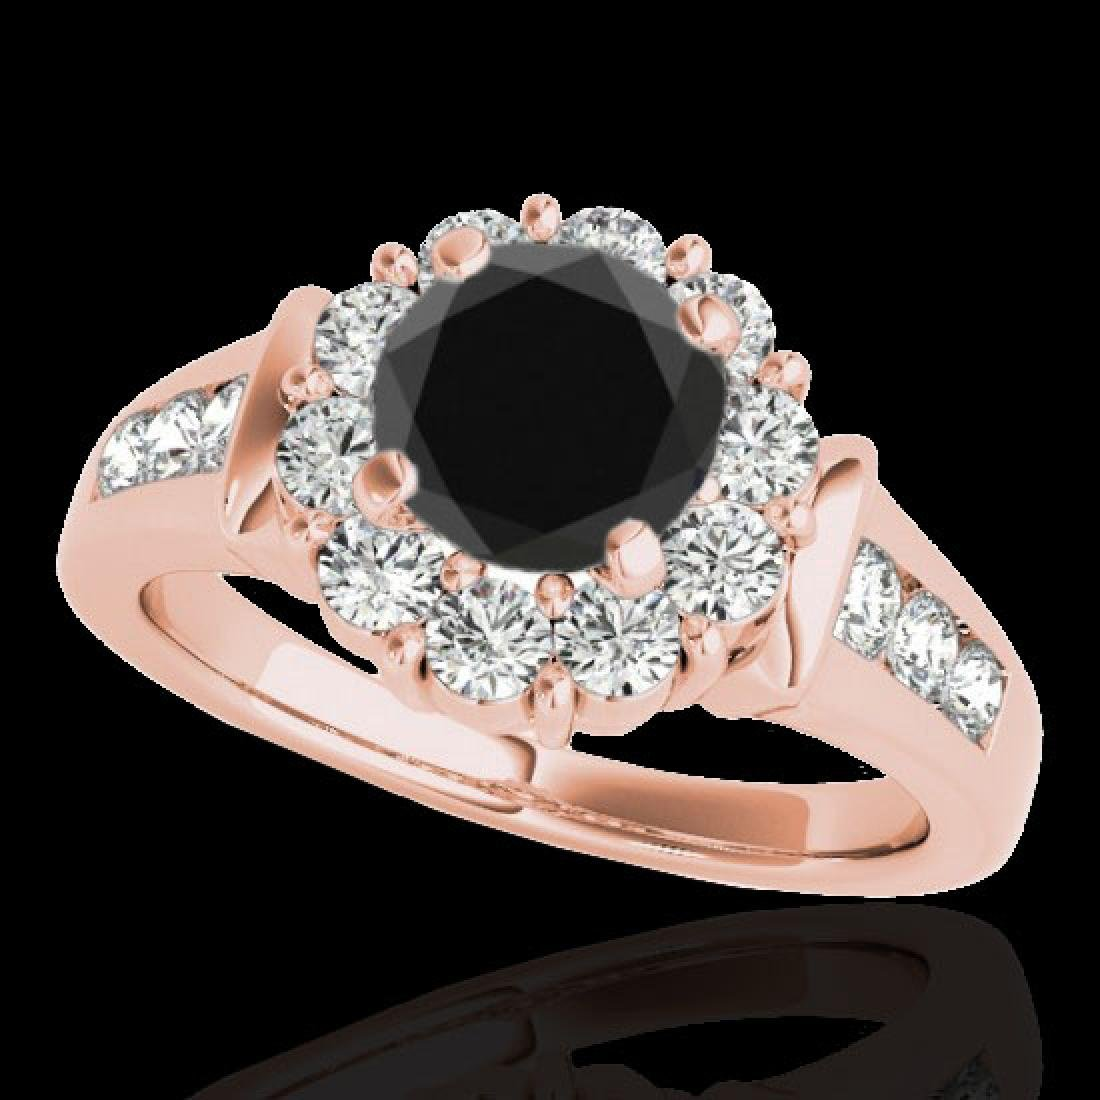 1.9 CTW Certified VS Black Diamond Solitaire Halo Ring